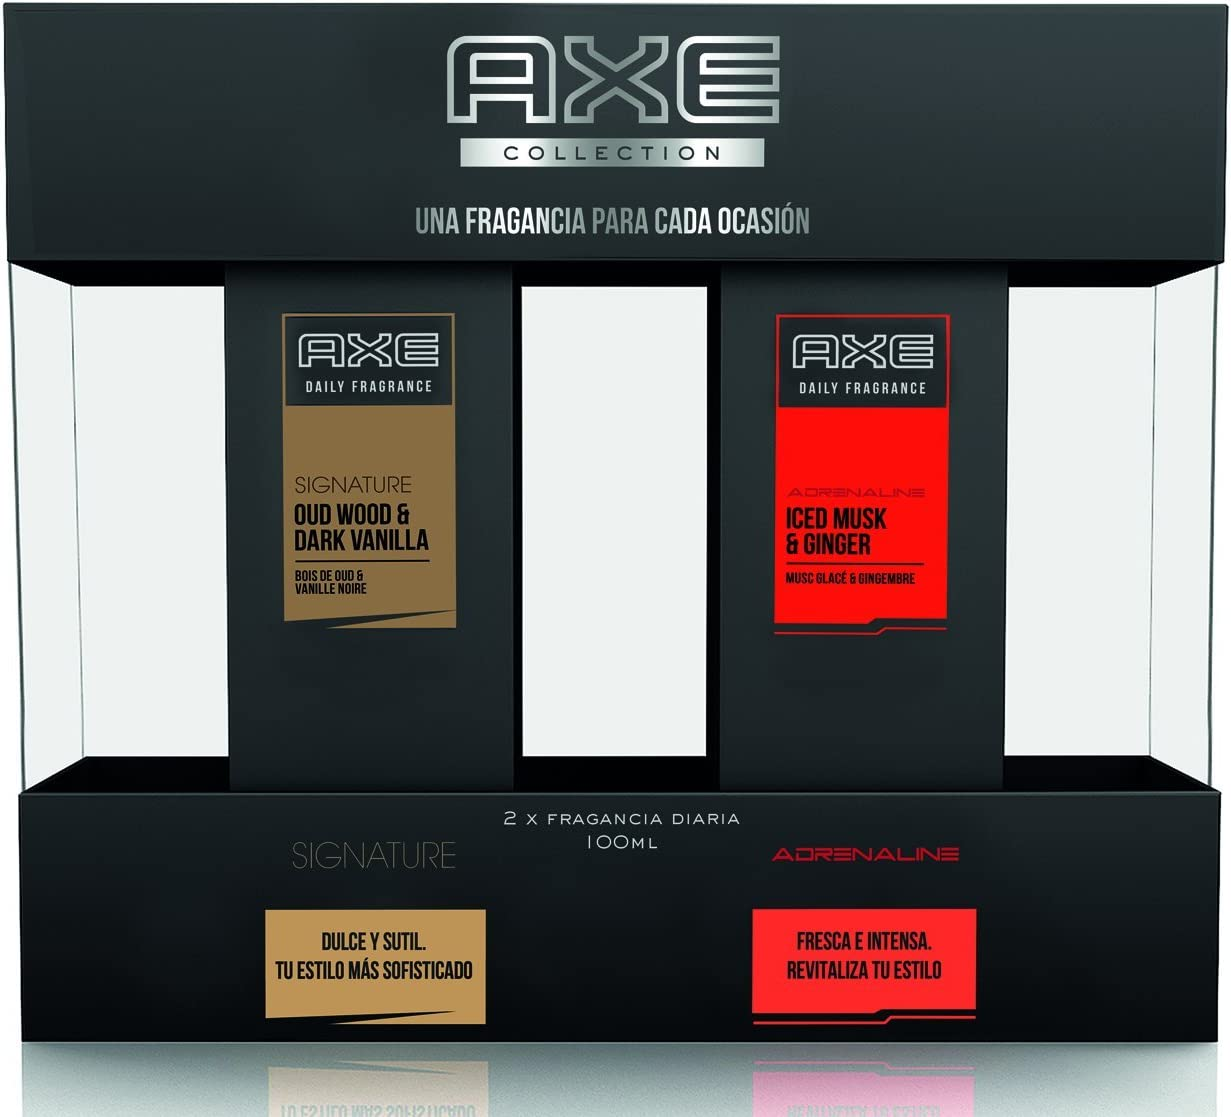 Axe Fragancia Diaria Pack Regalo: Amazon.es: Belleza